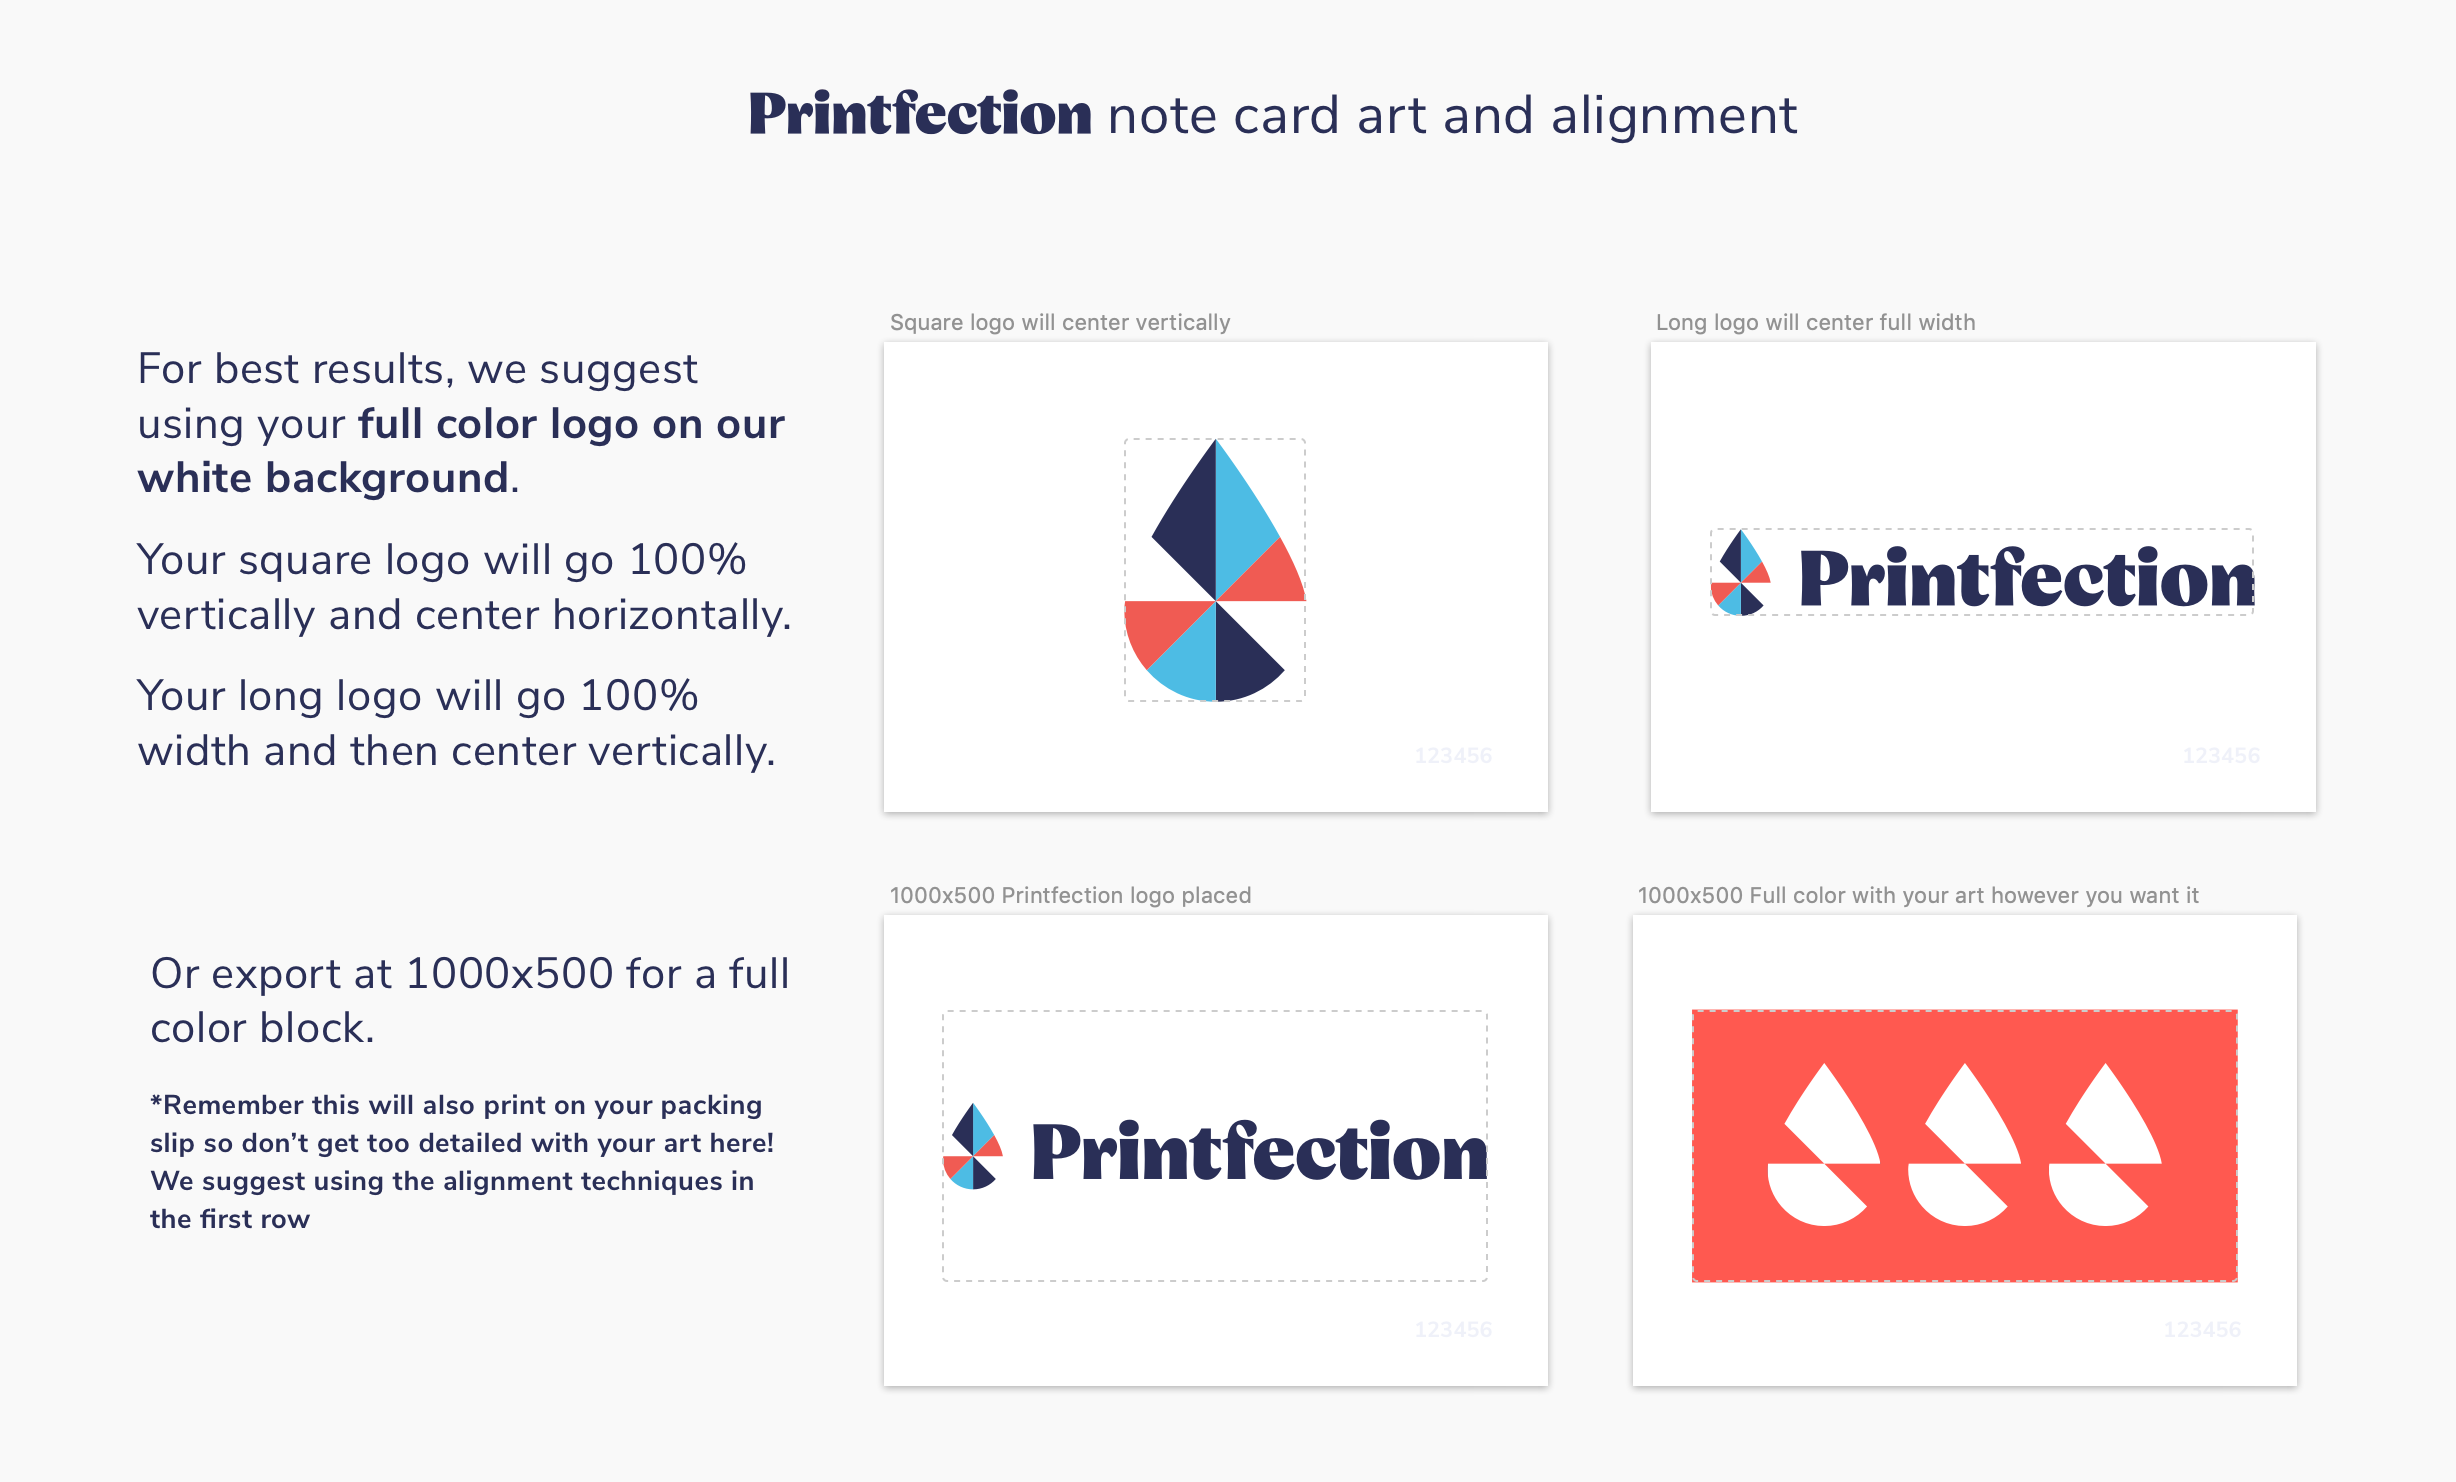 Printfection_note_card_alignment_guidelines.png